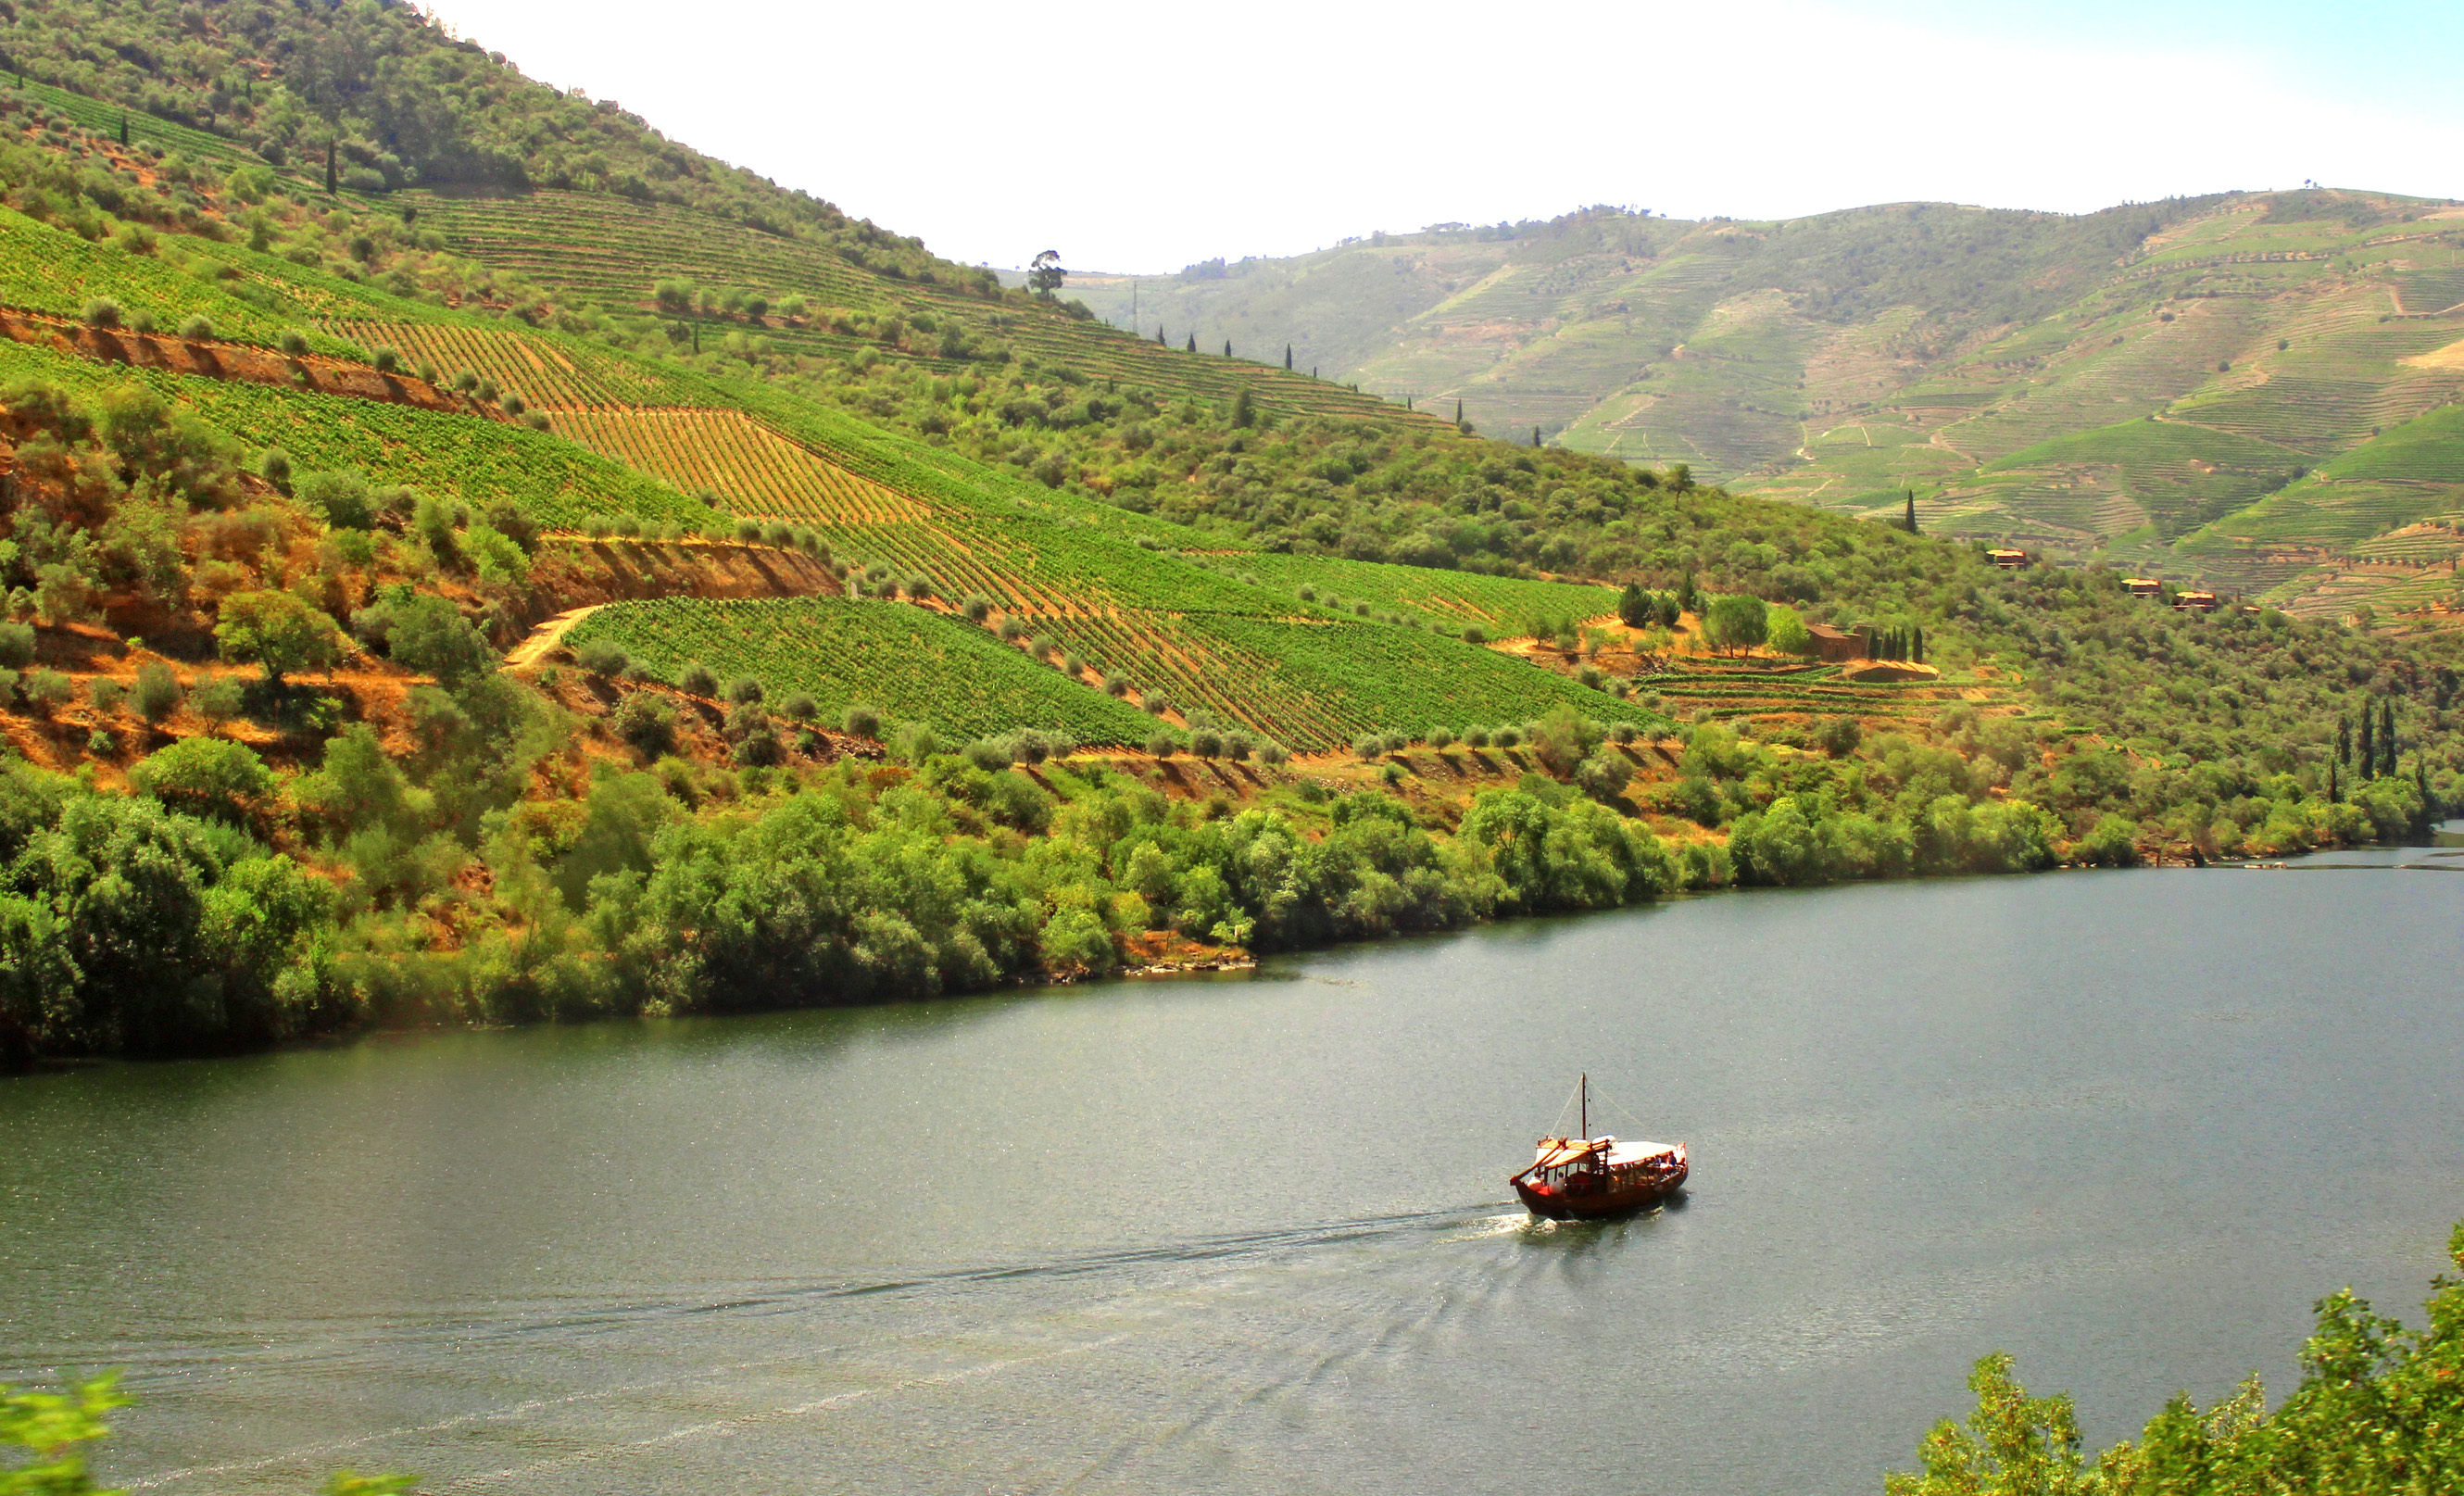 Typical Rabelo Boat Cruising Along the Douro River - Douro Valley, Agriculture, Port, Scenery, Sandeman, HQ Photo